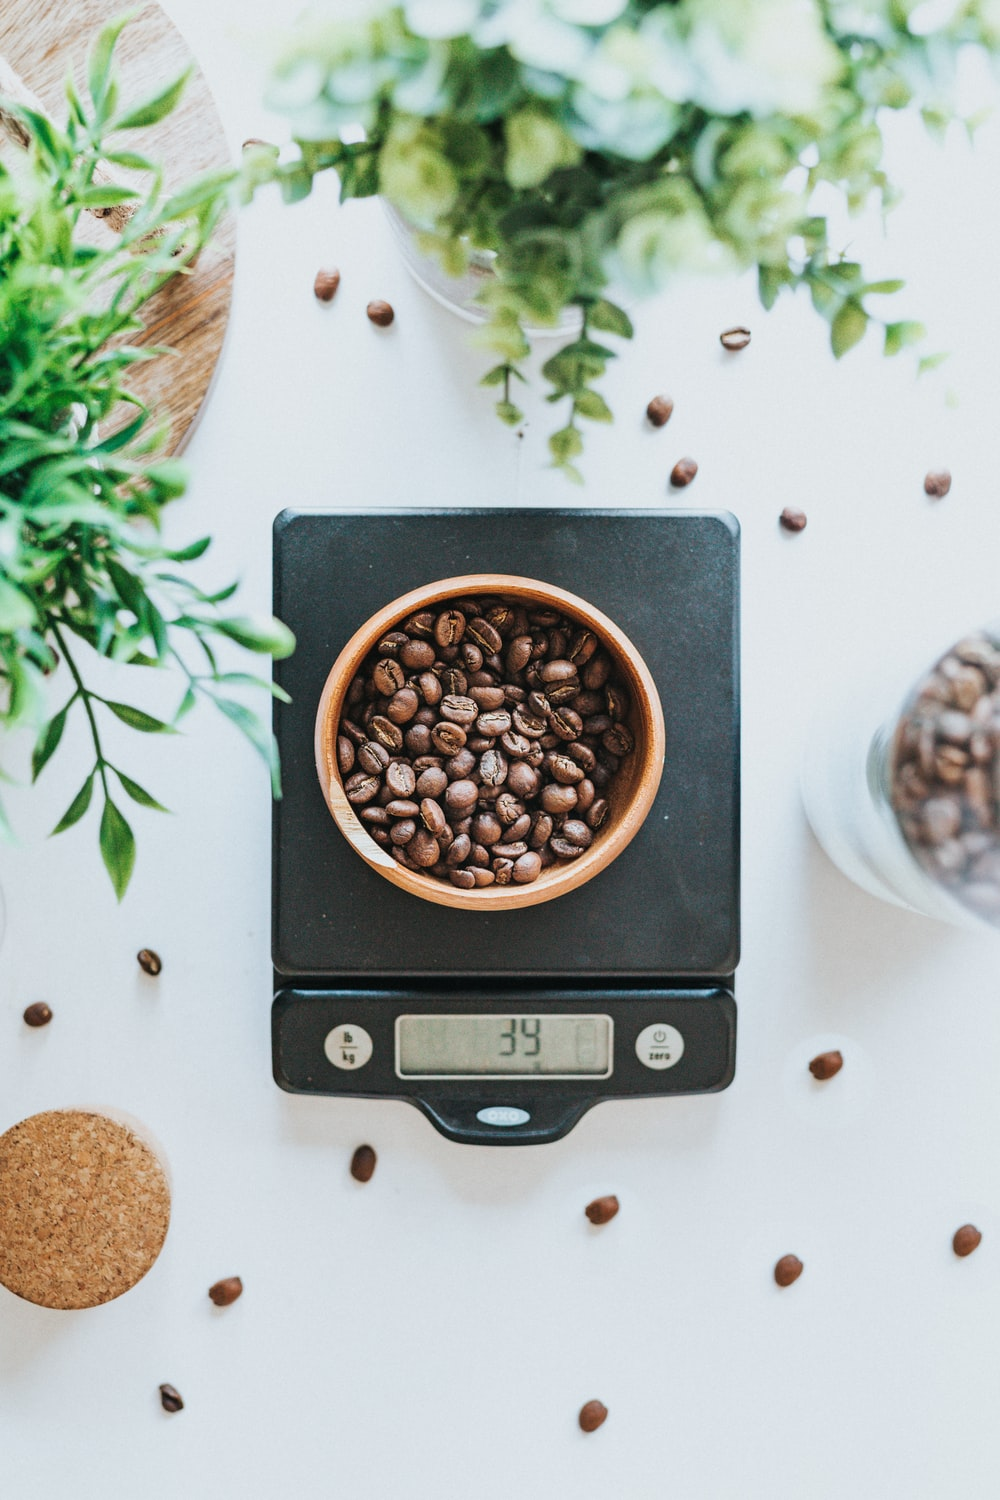 photo of bowl filled with coffee beans on black digital scale at 39 grams